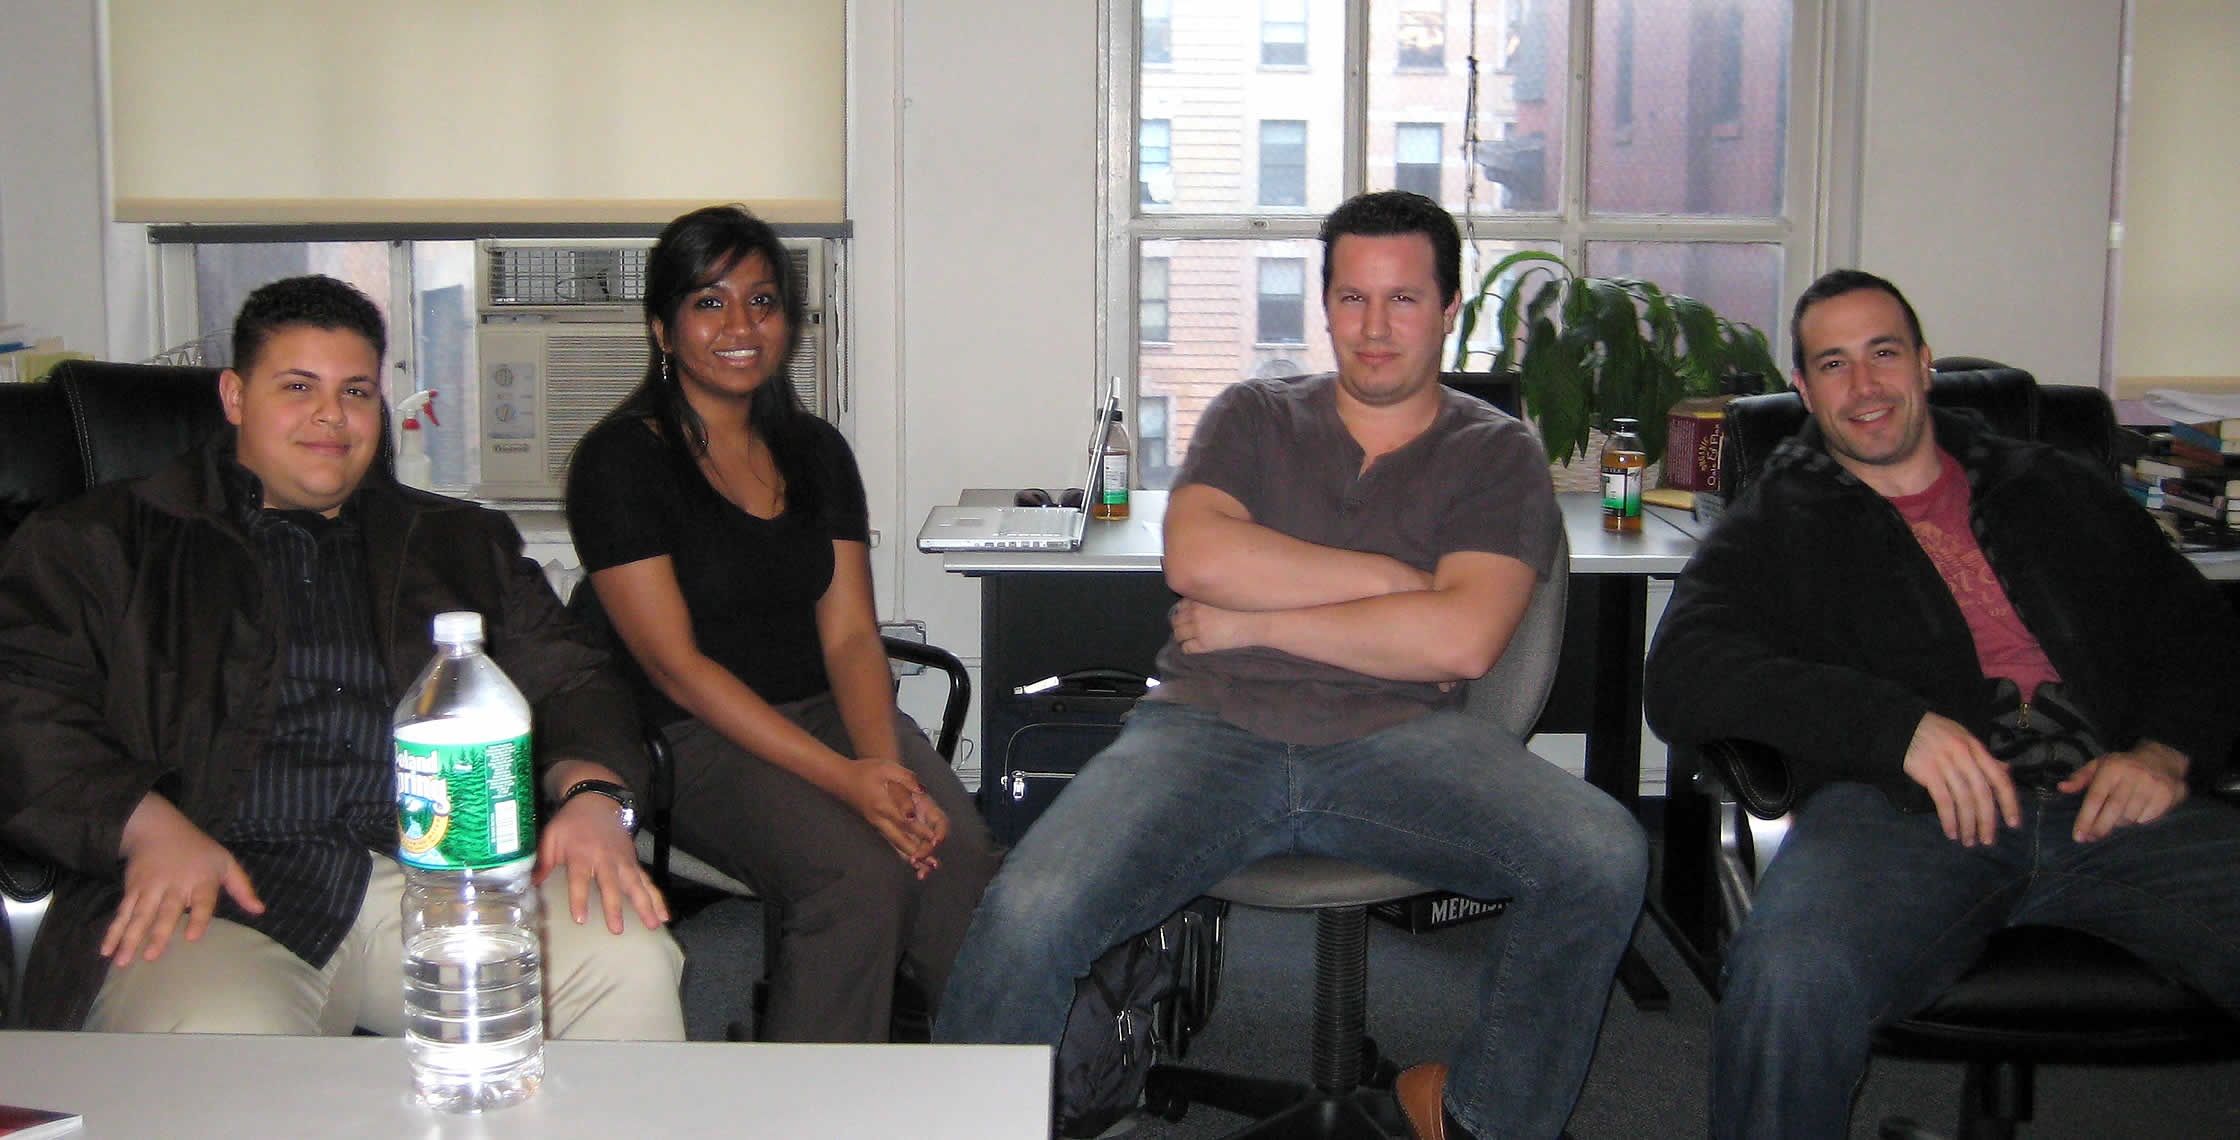 Ben Nadel at the New York ColdFusion User Group (Apr. 2008) with: Clark Valberg and Nafisa Sabu and Rob Gonda